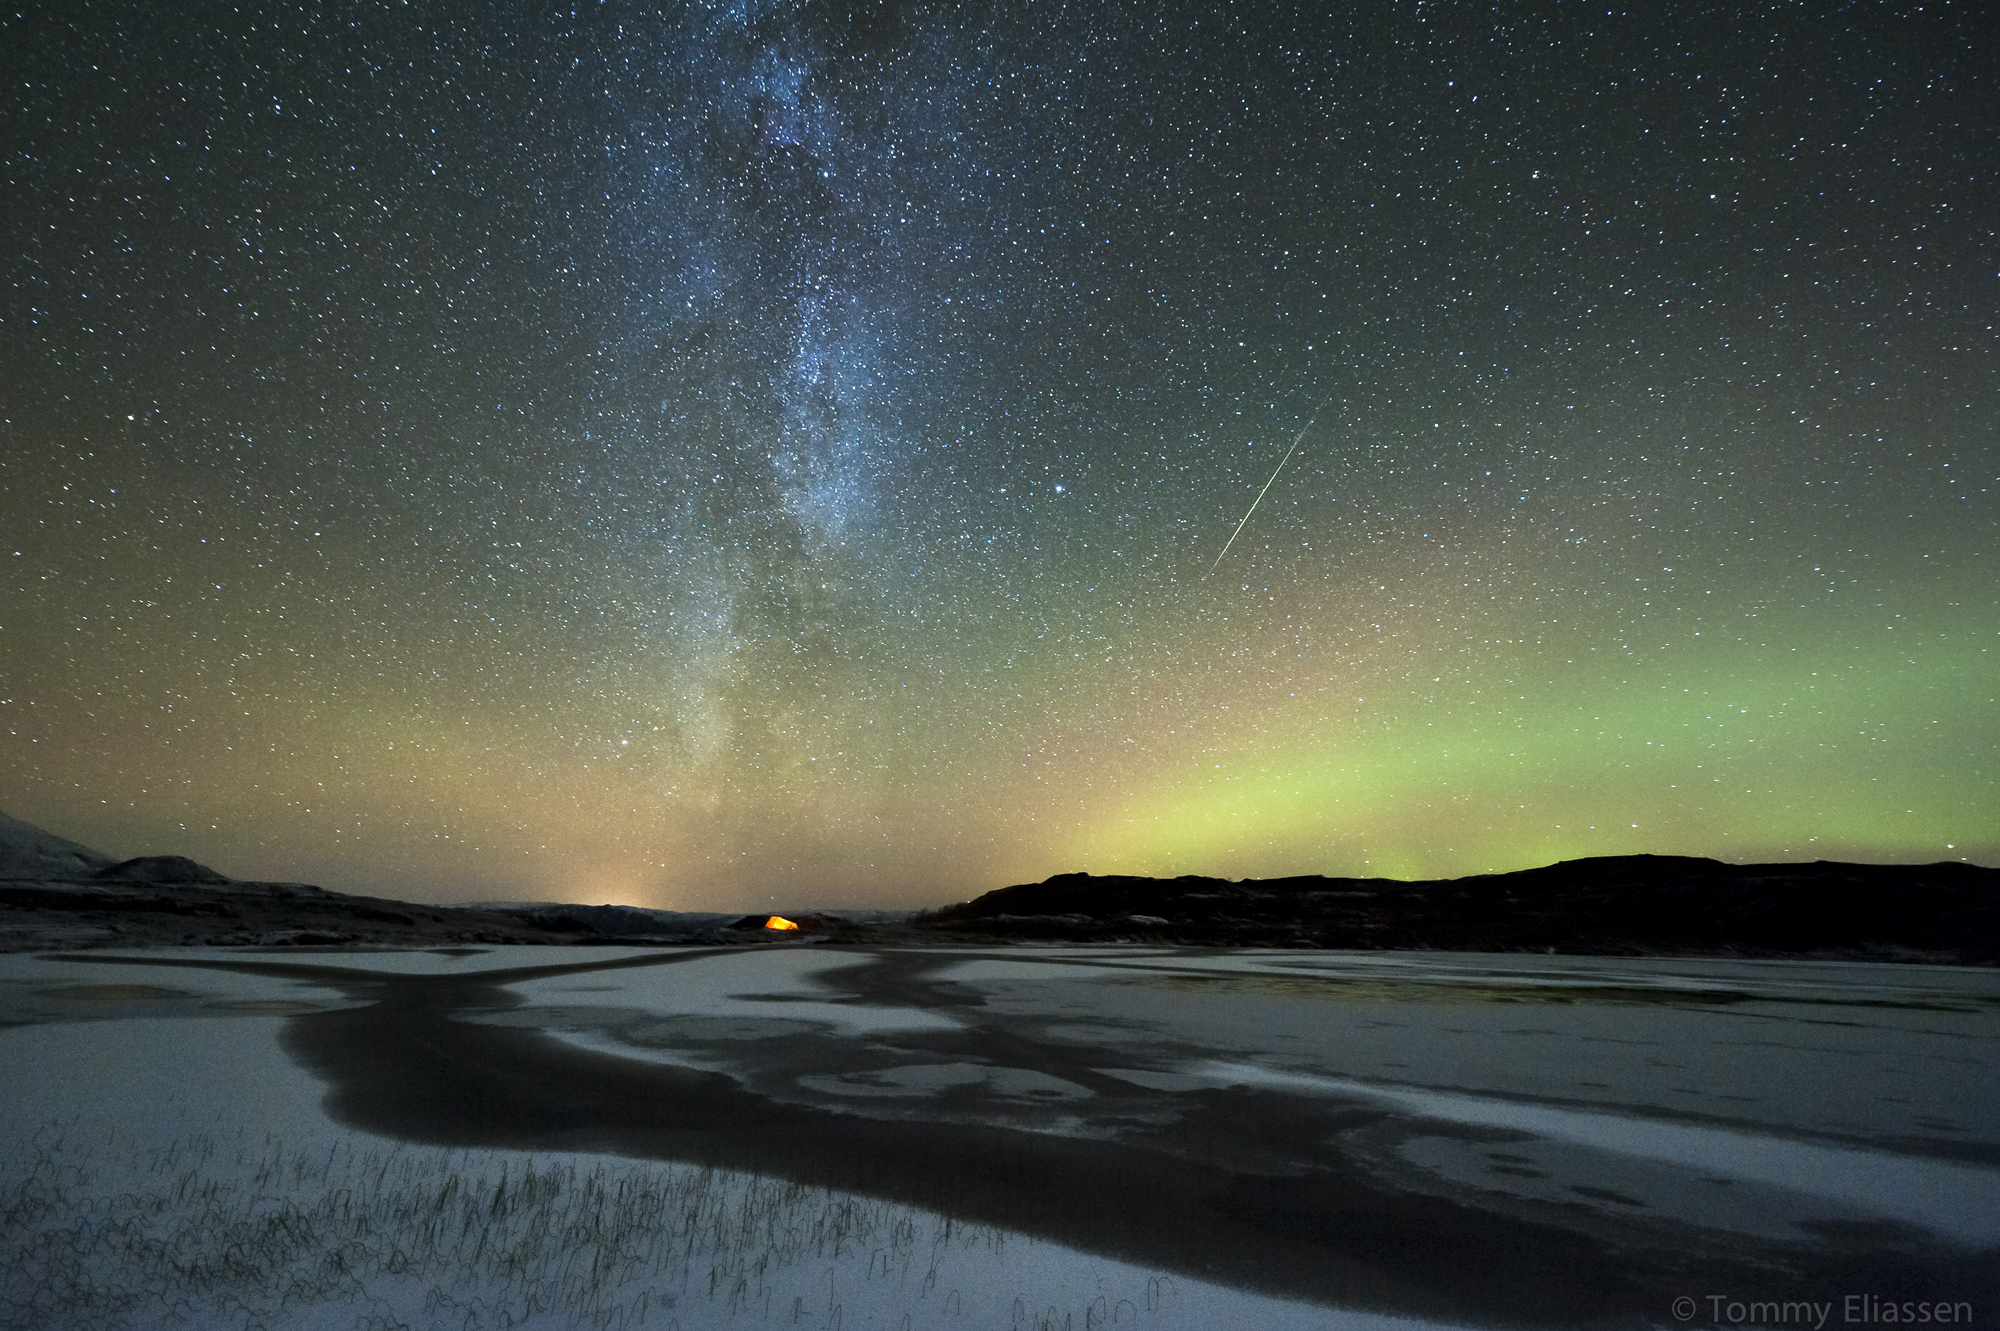 Orionid Meteor Shower 2012: Auroras by Tommy Eliassen